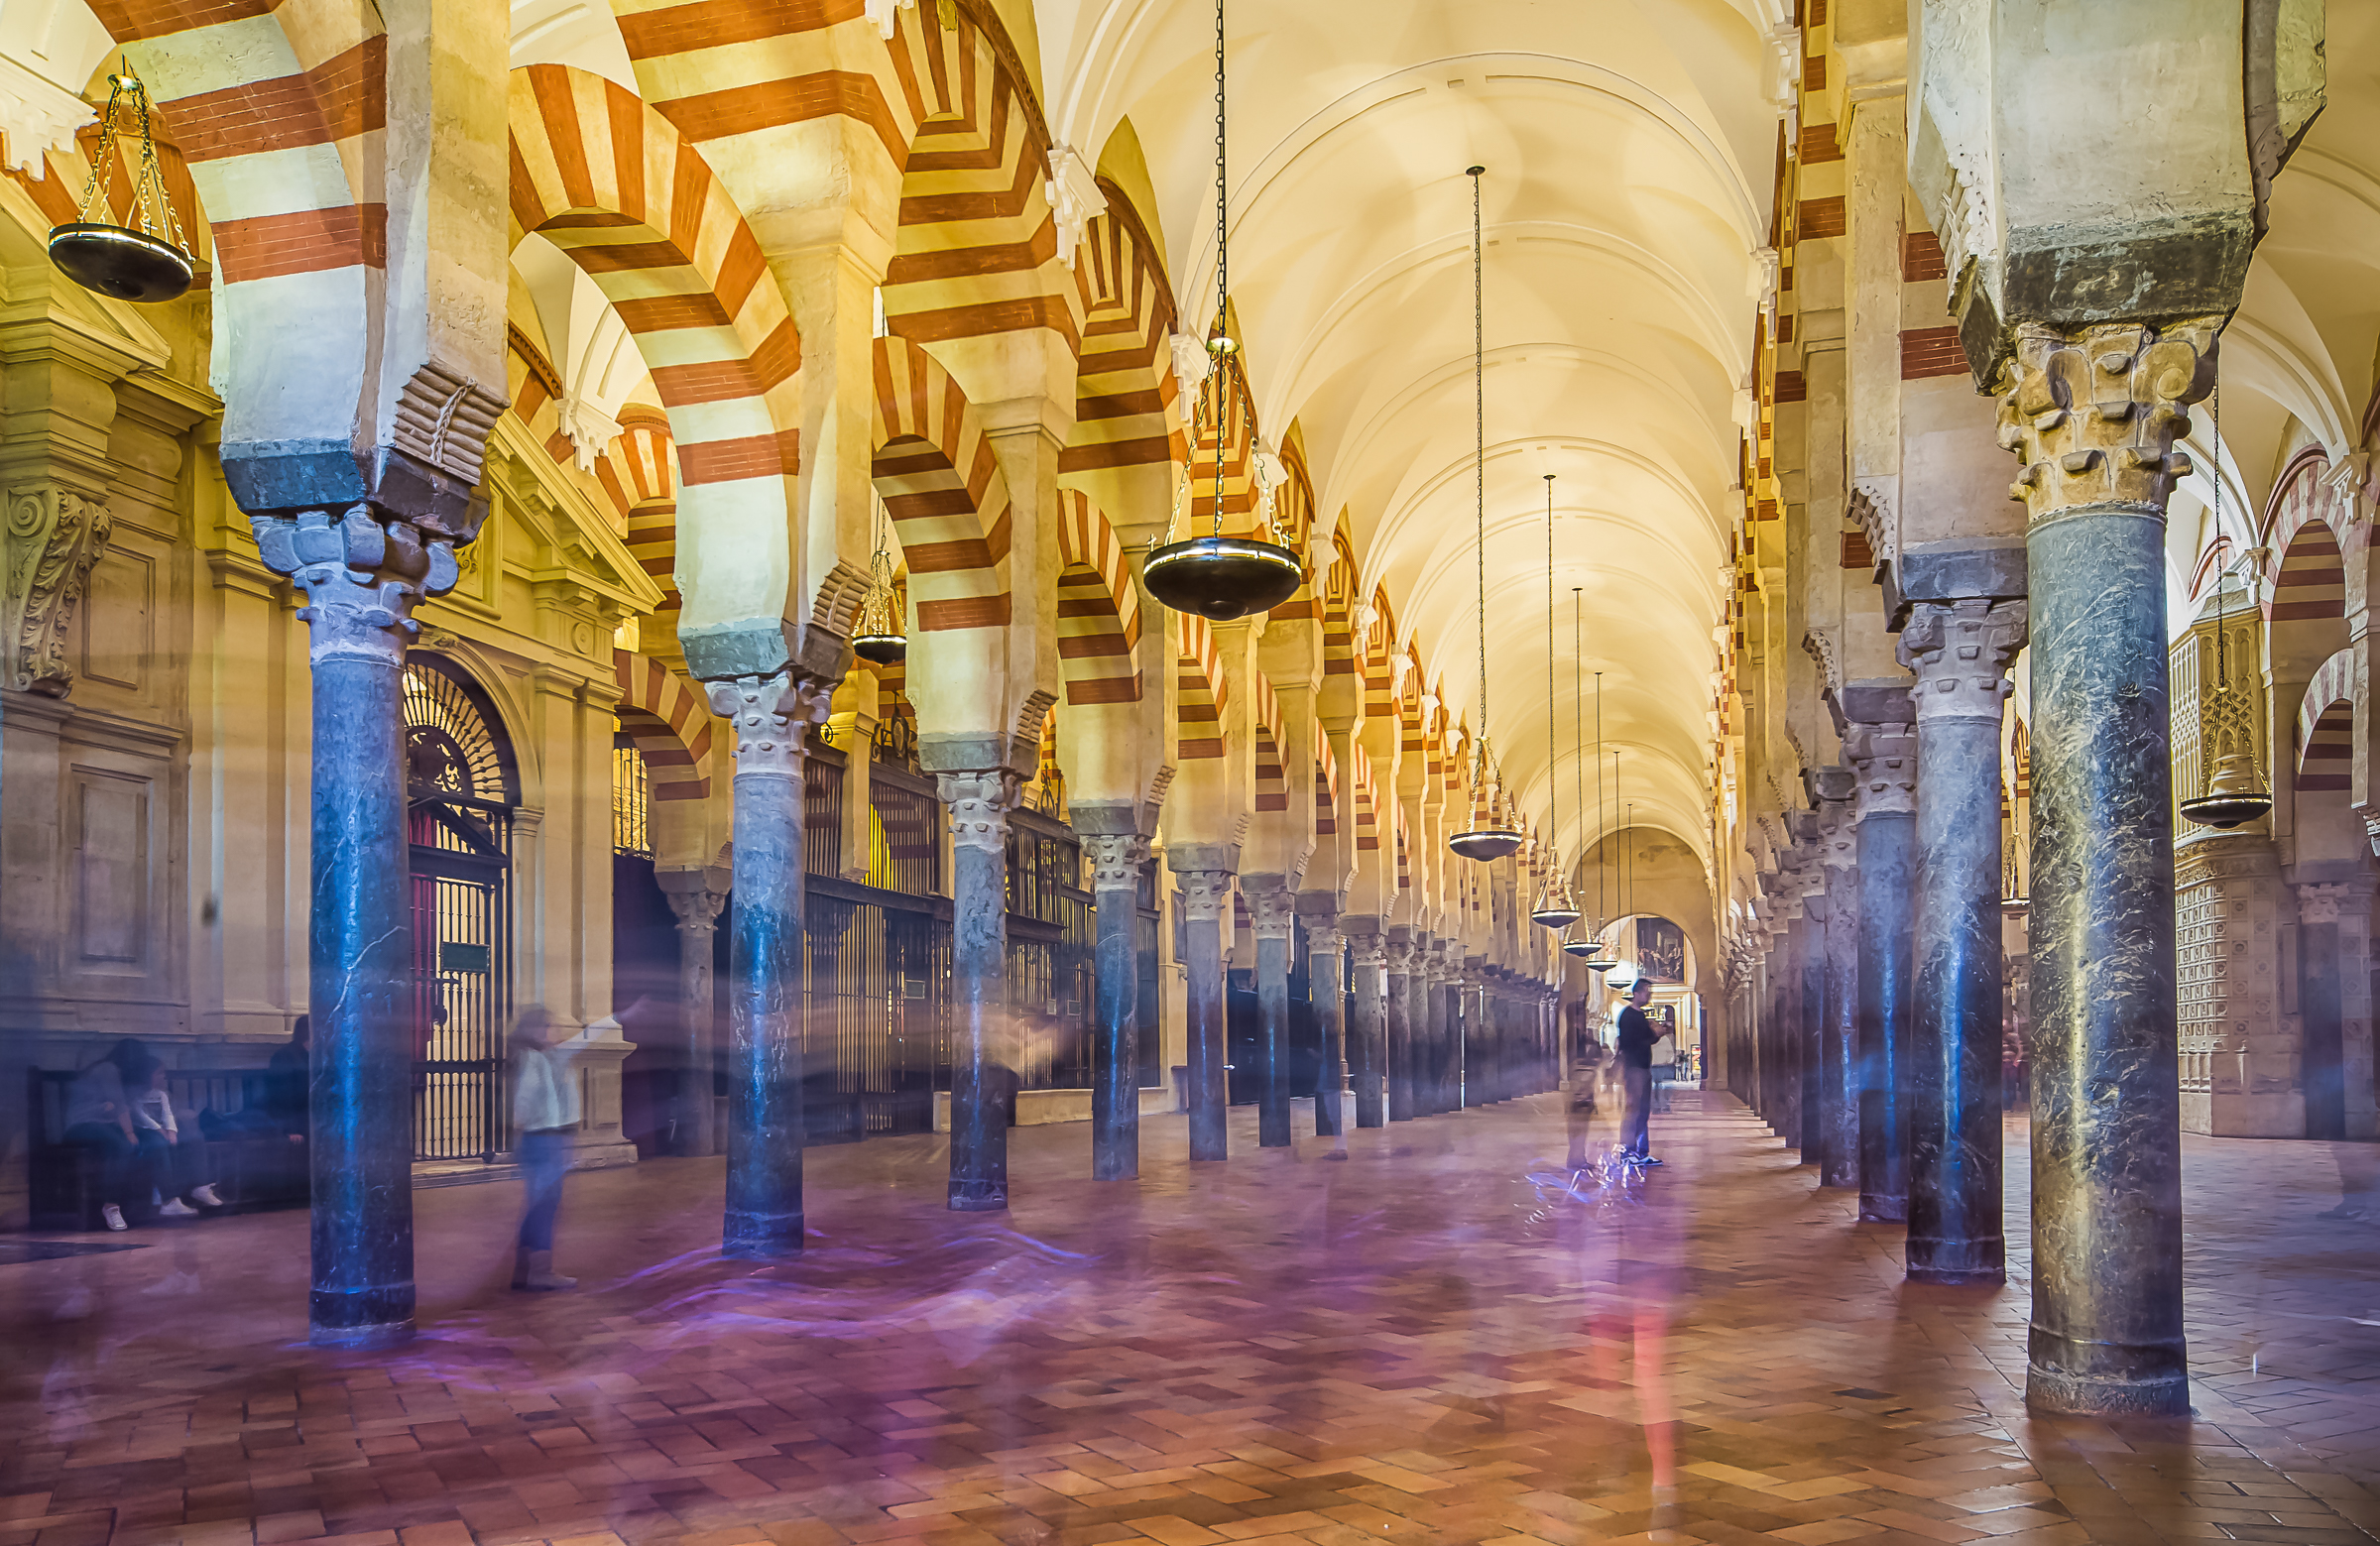 Southern Spain Tour - May 19 - 28Street Portraits & Moorish Architecture are highlights. Don Quixote Windmills and white washed houses in small villages with hidden laneways will promise to capture the essence of Andalucia.$US4999 (Twin Share)